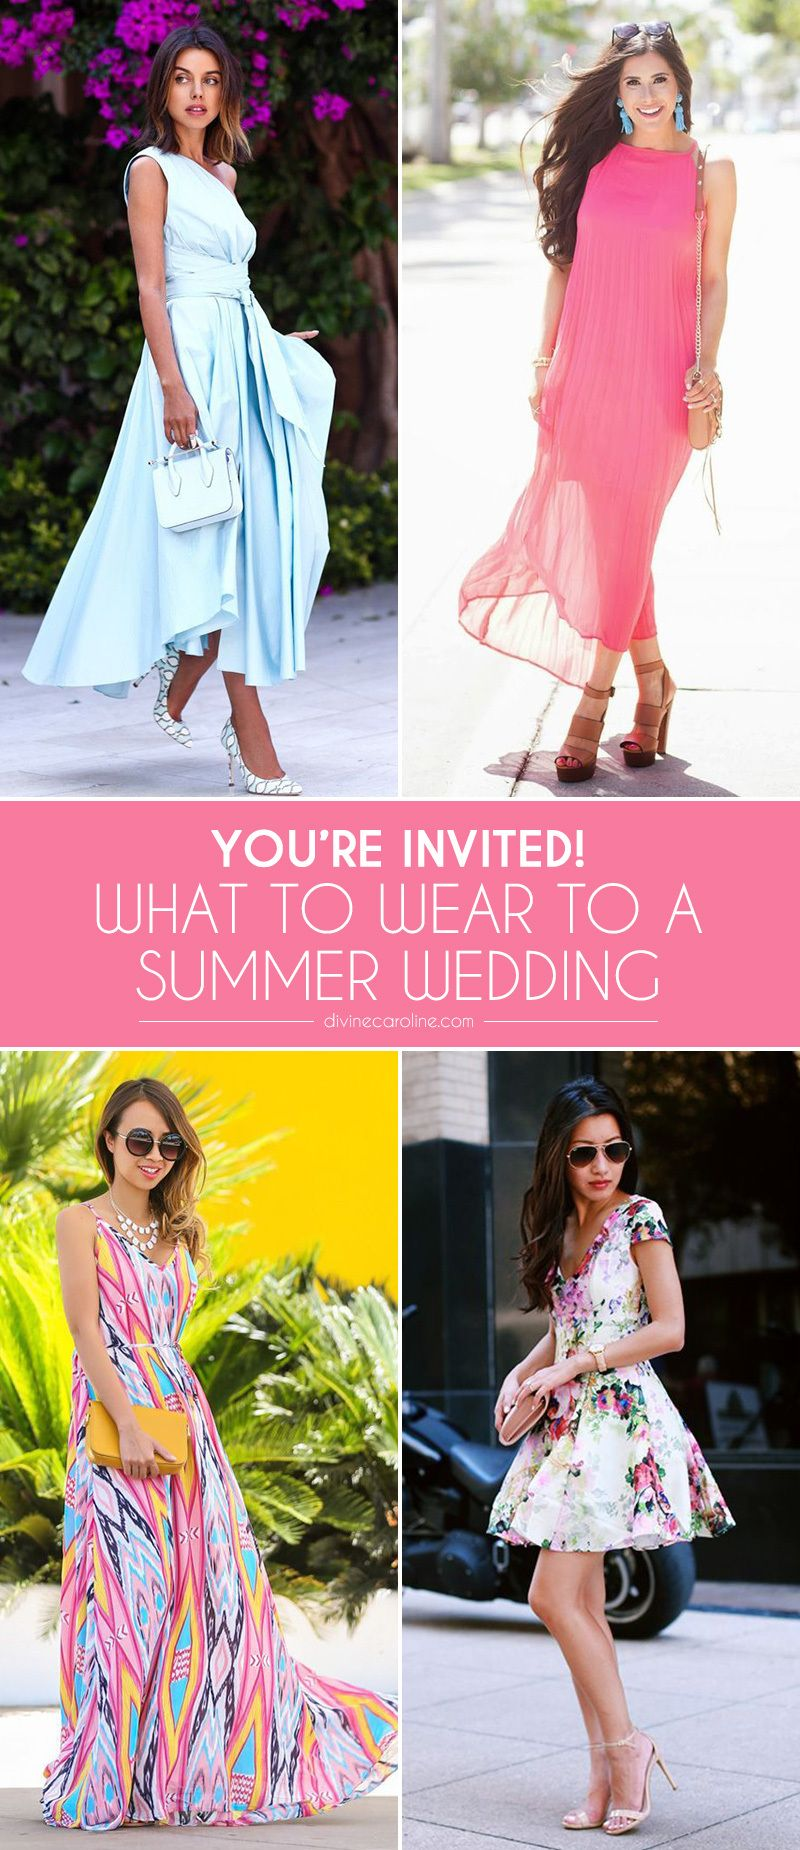 You\'re Invited! What to Wear to a Summer Wedding | Moda chic ...